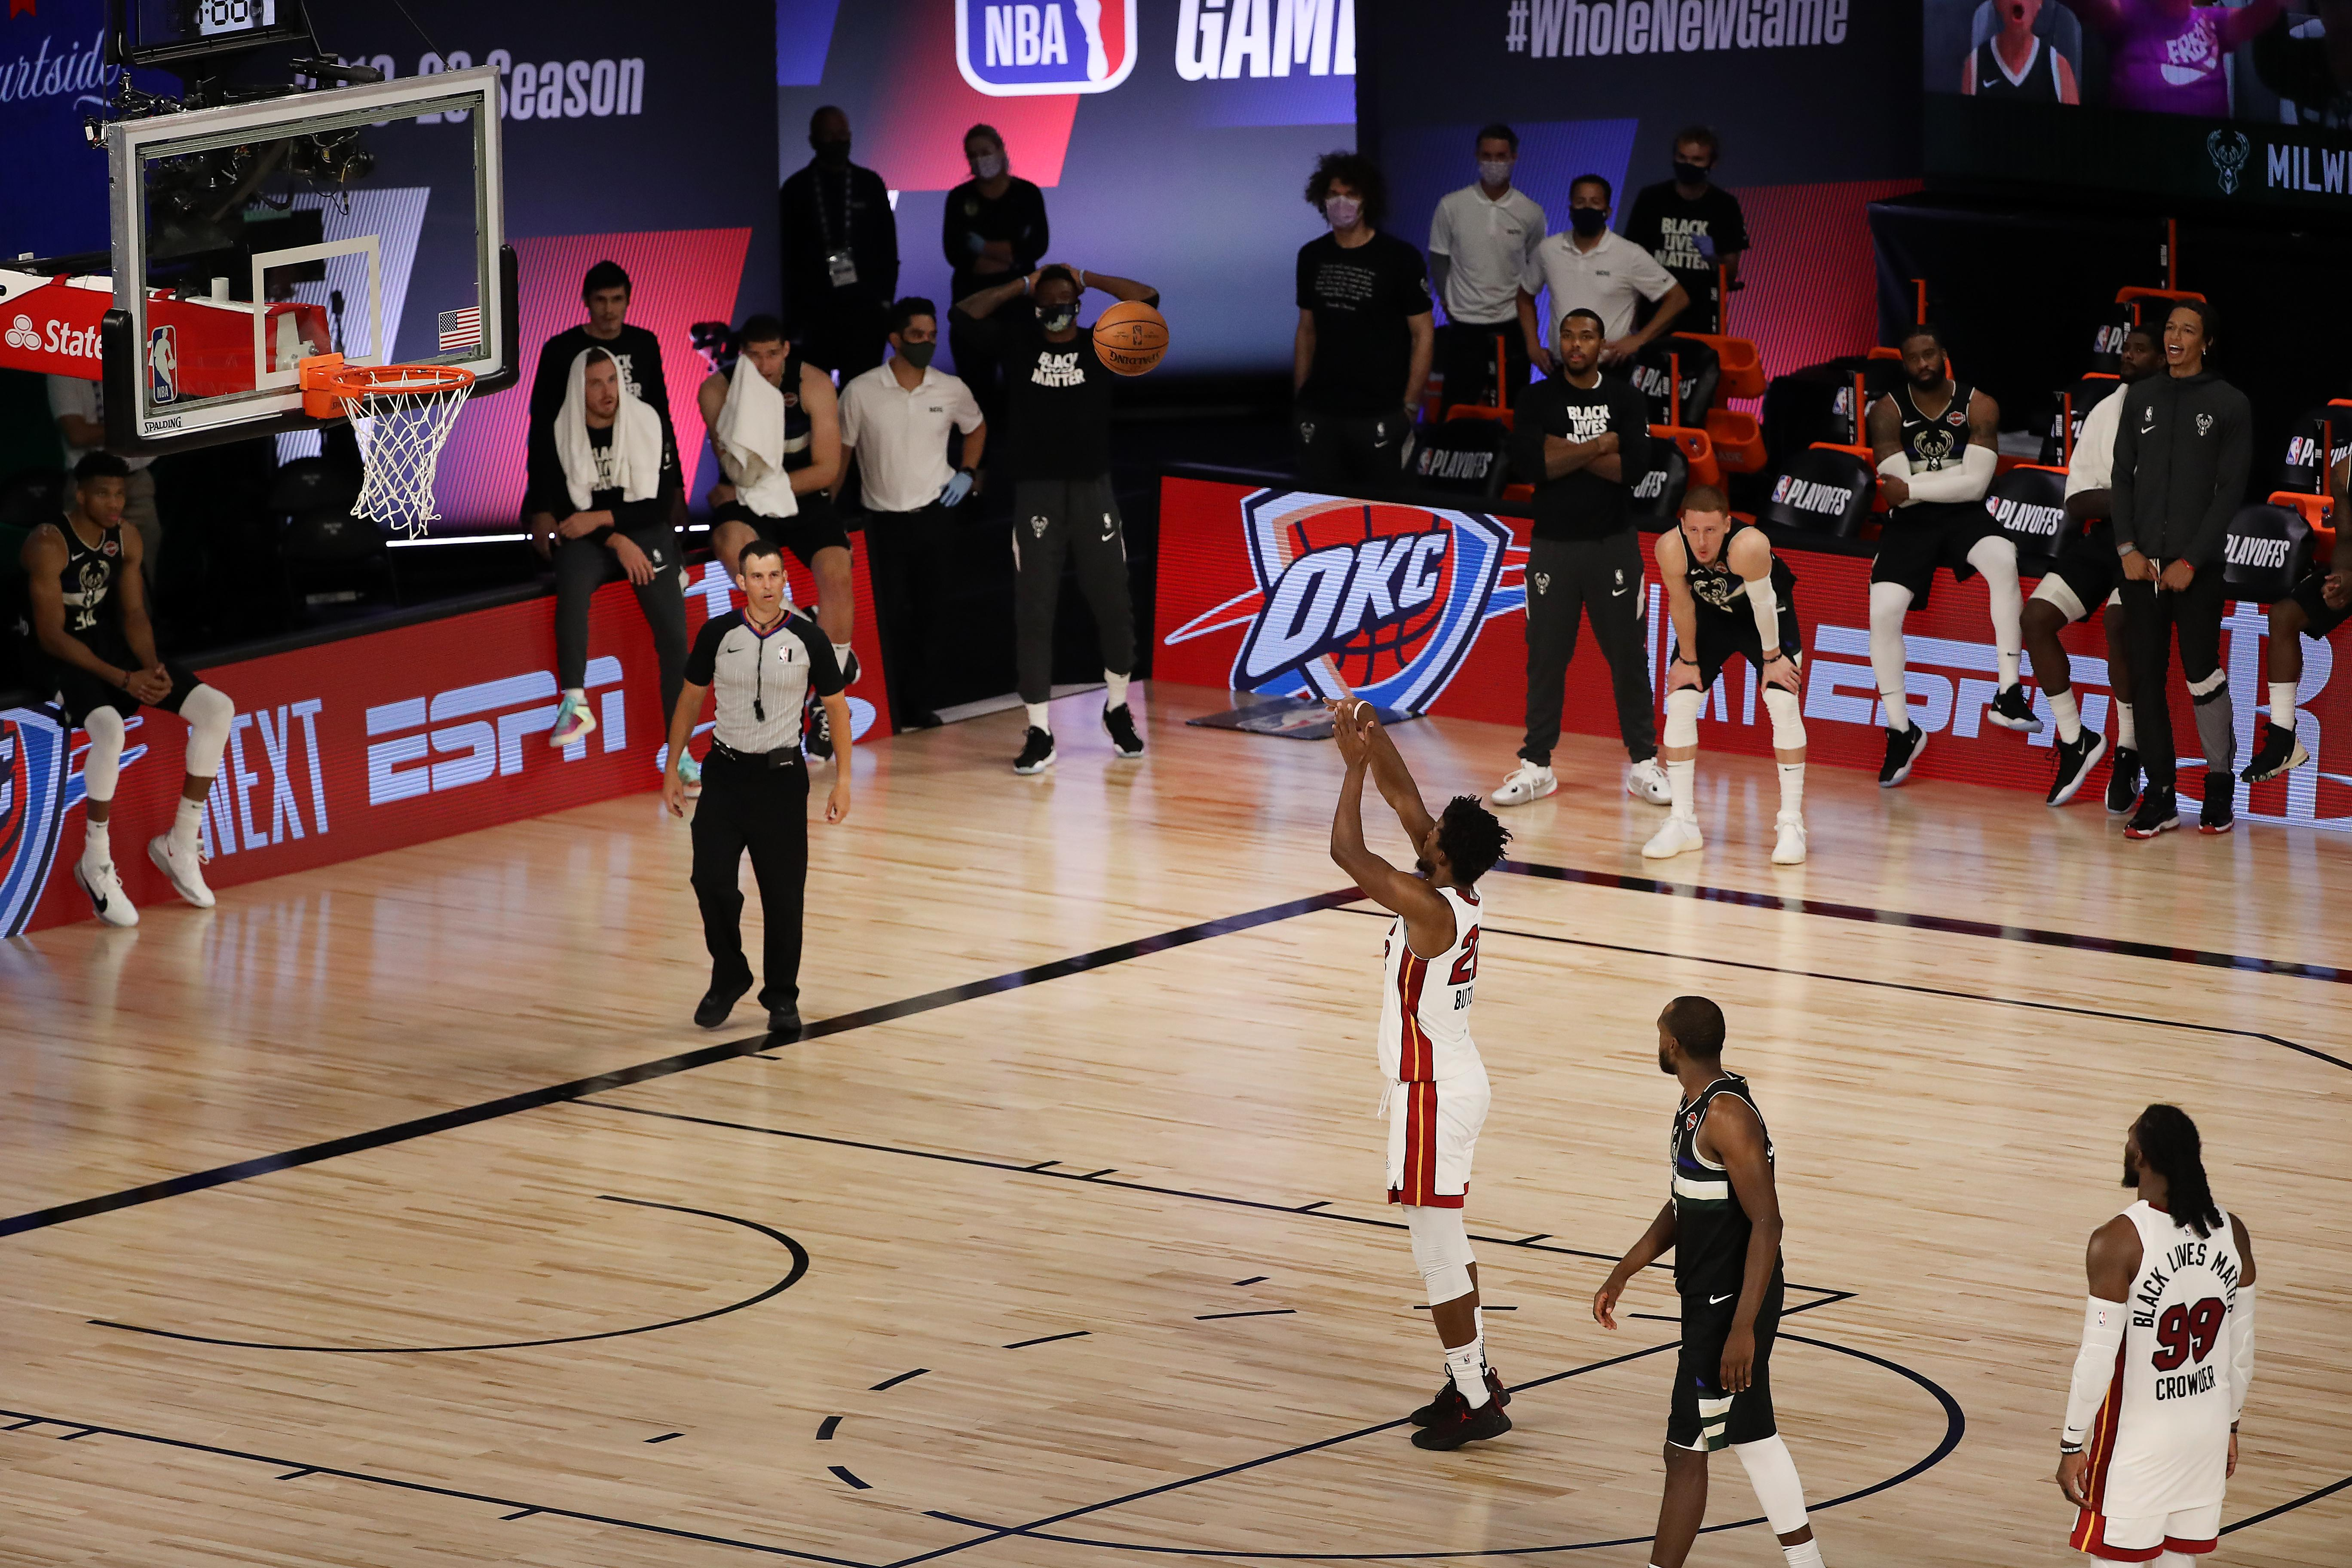 Nba Bucks In 0 2 Hole After Controversial Finish Vs Heat